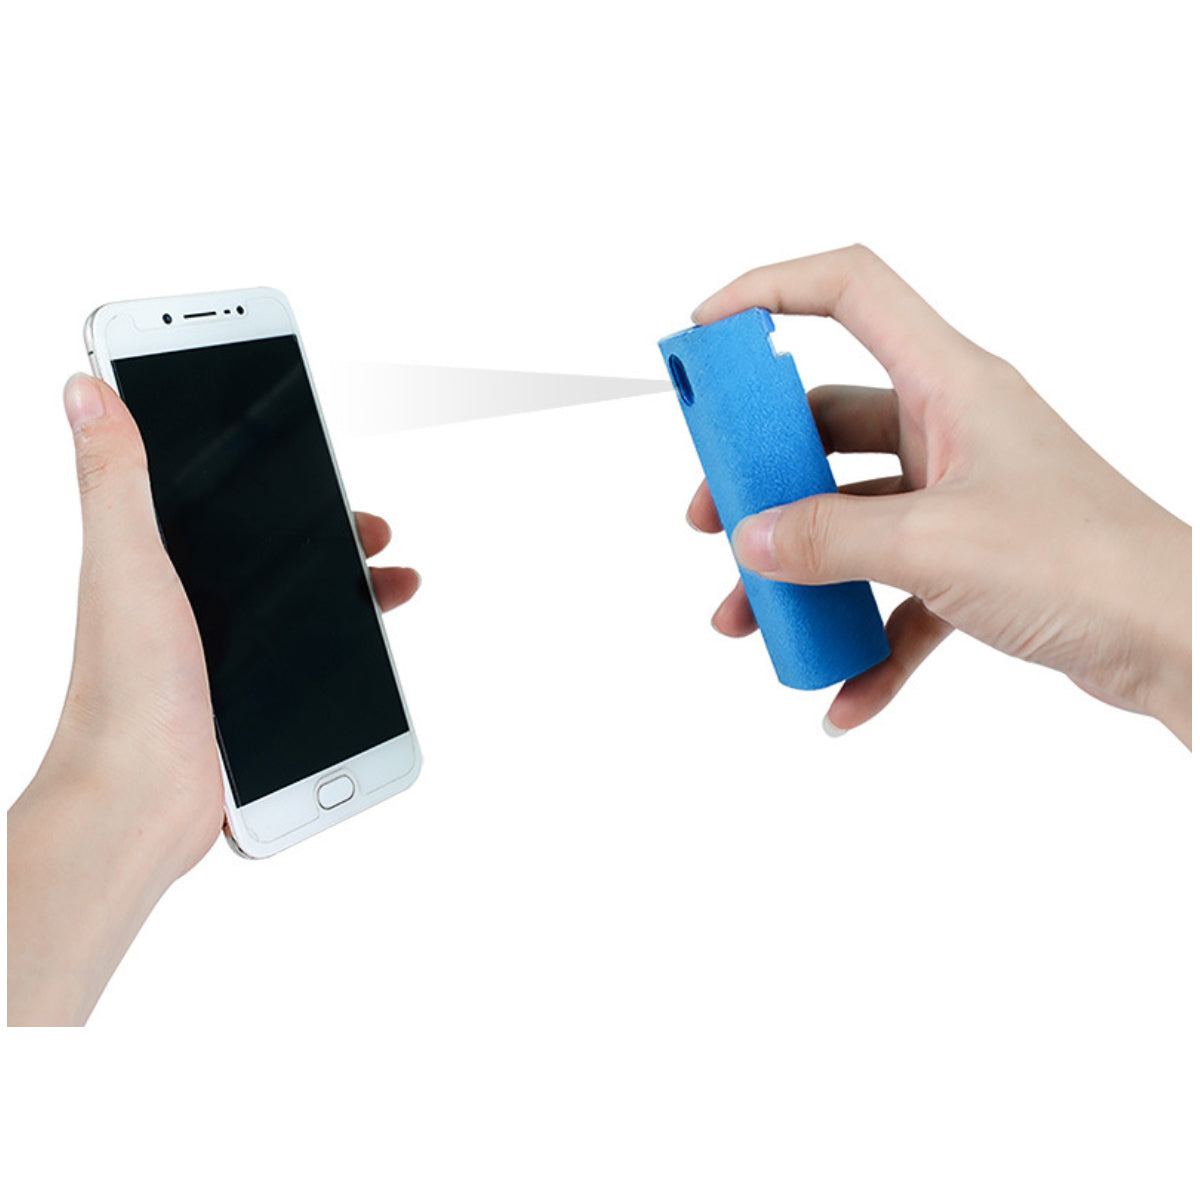 shopify-Phone Butler Spray Wipe Dry And Clean Phone - Tablets - Laptops-1